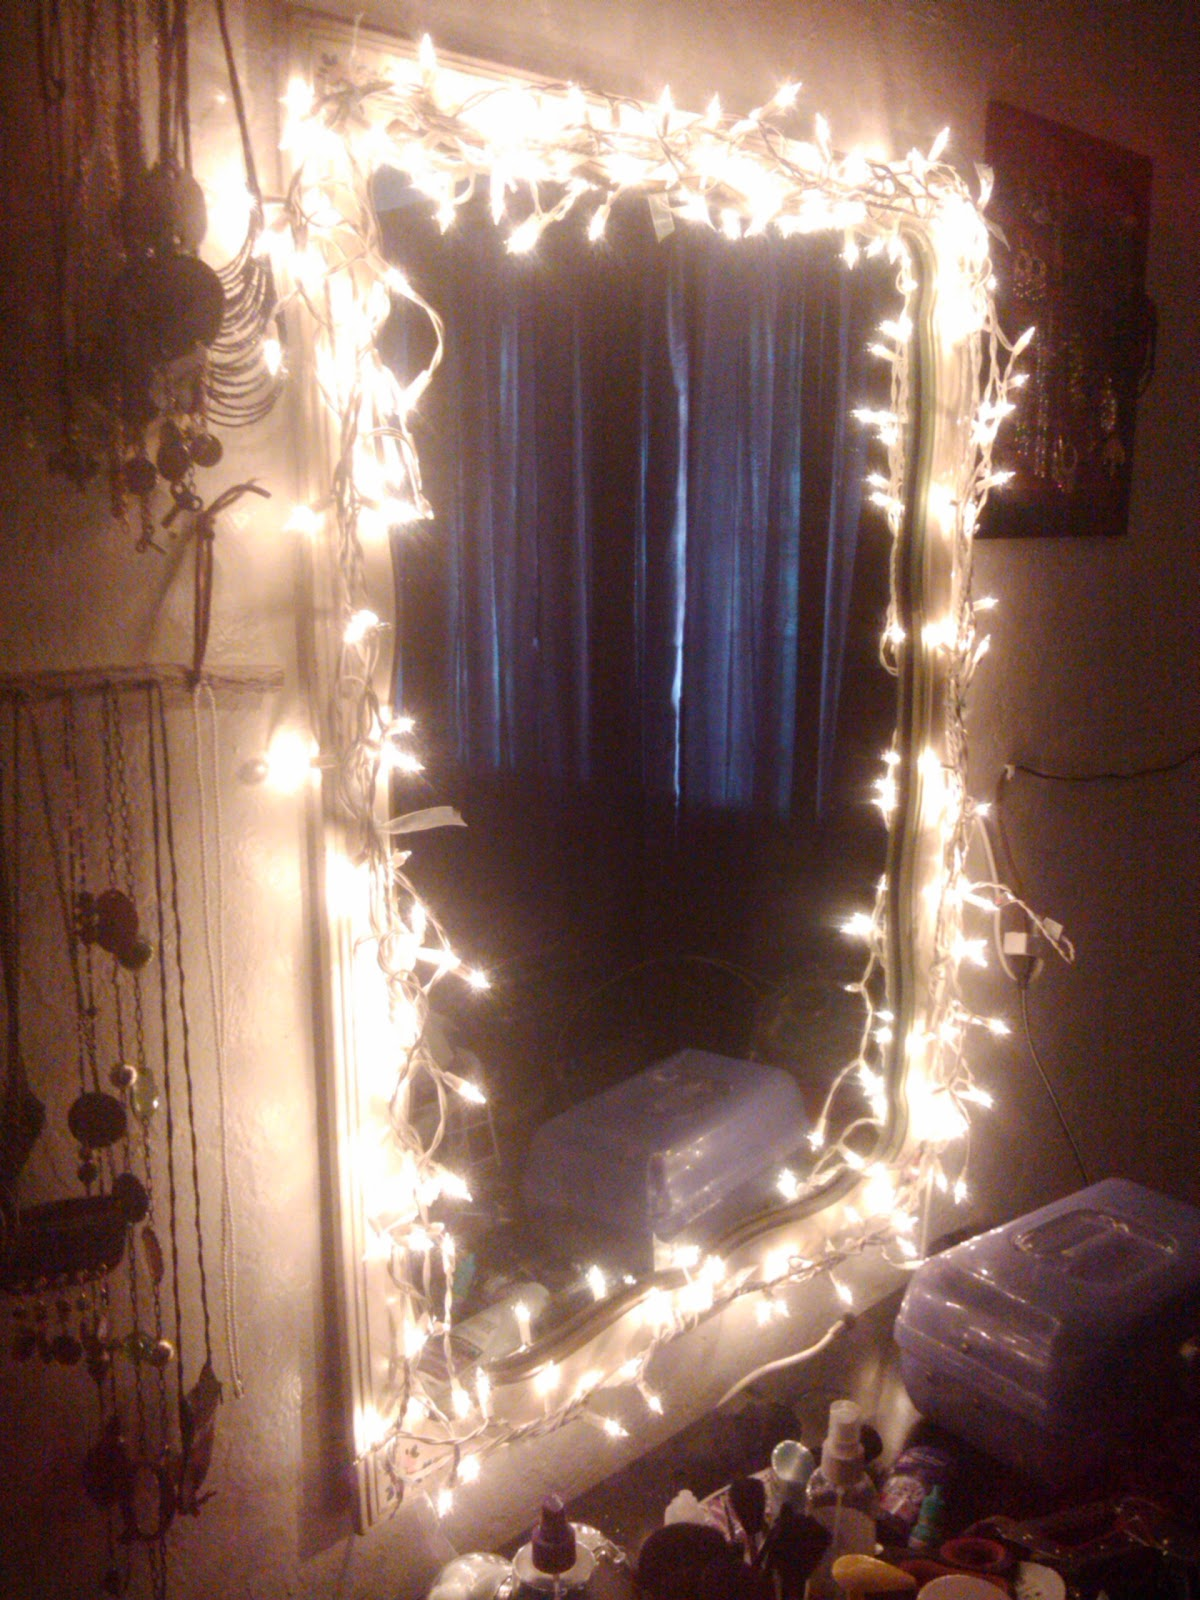 Homemade Vanity Mirror With Lights : Easy diy light up vanity mirror.